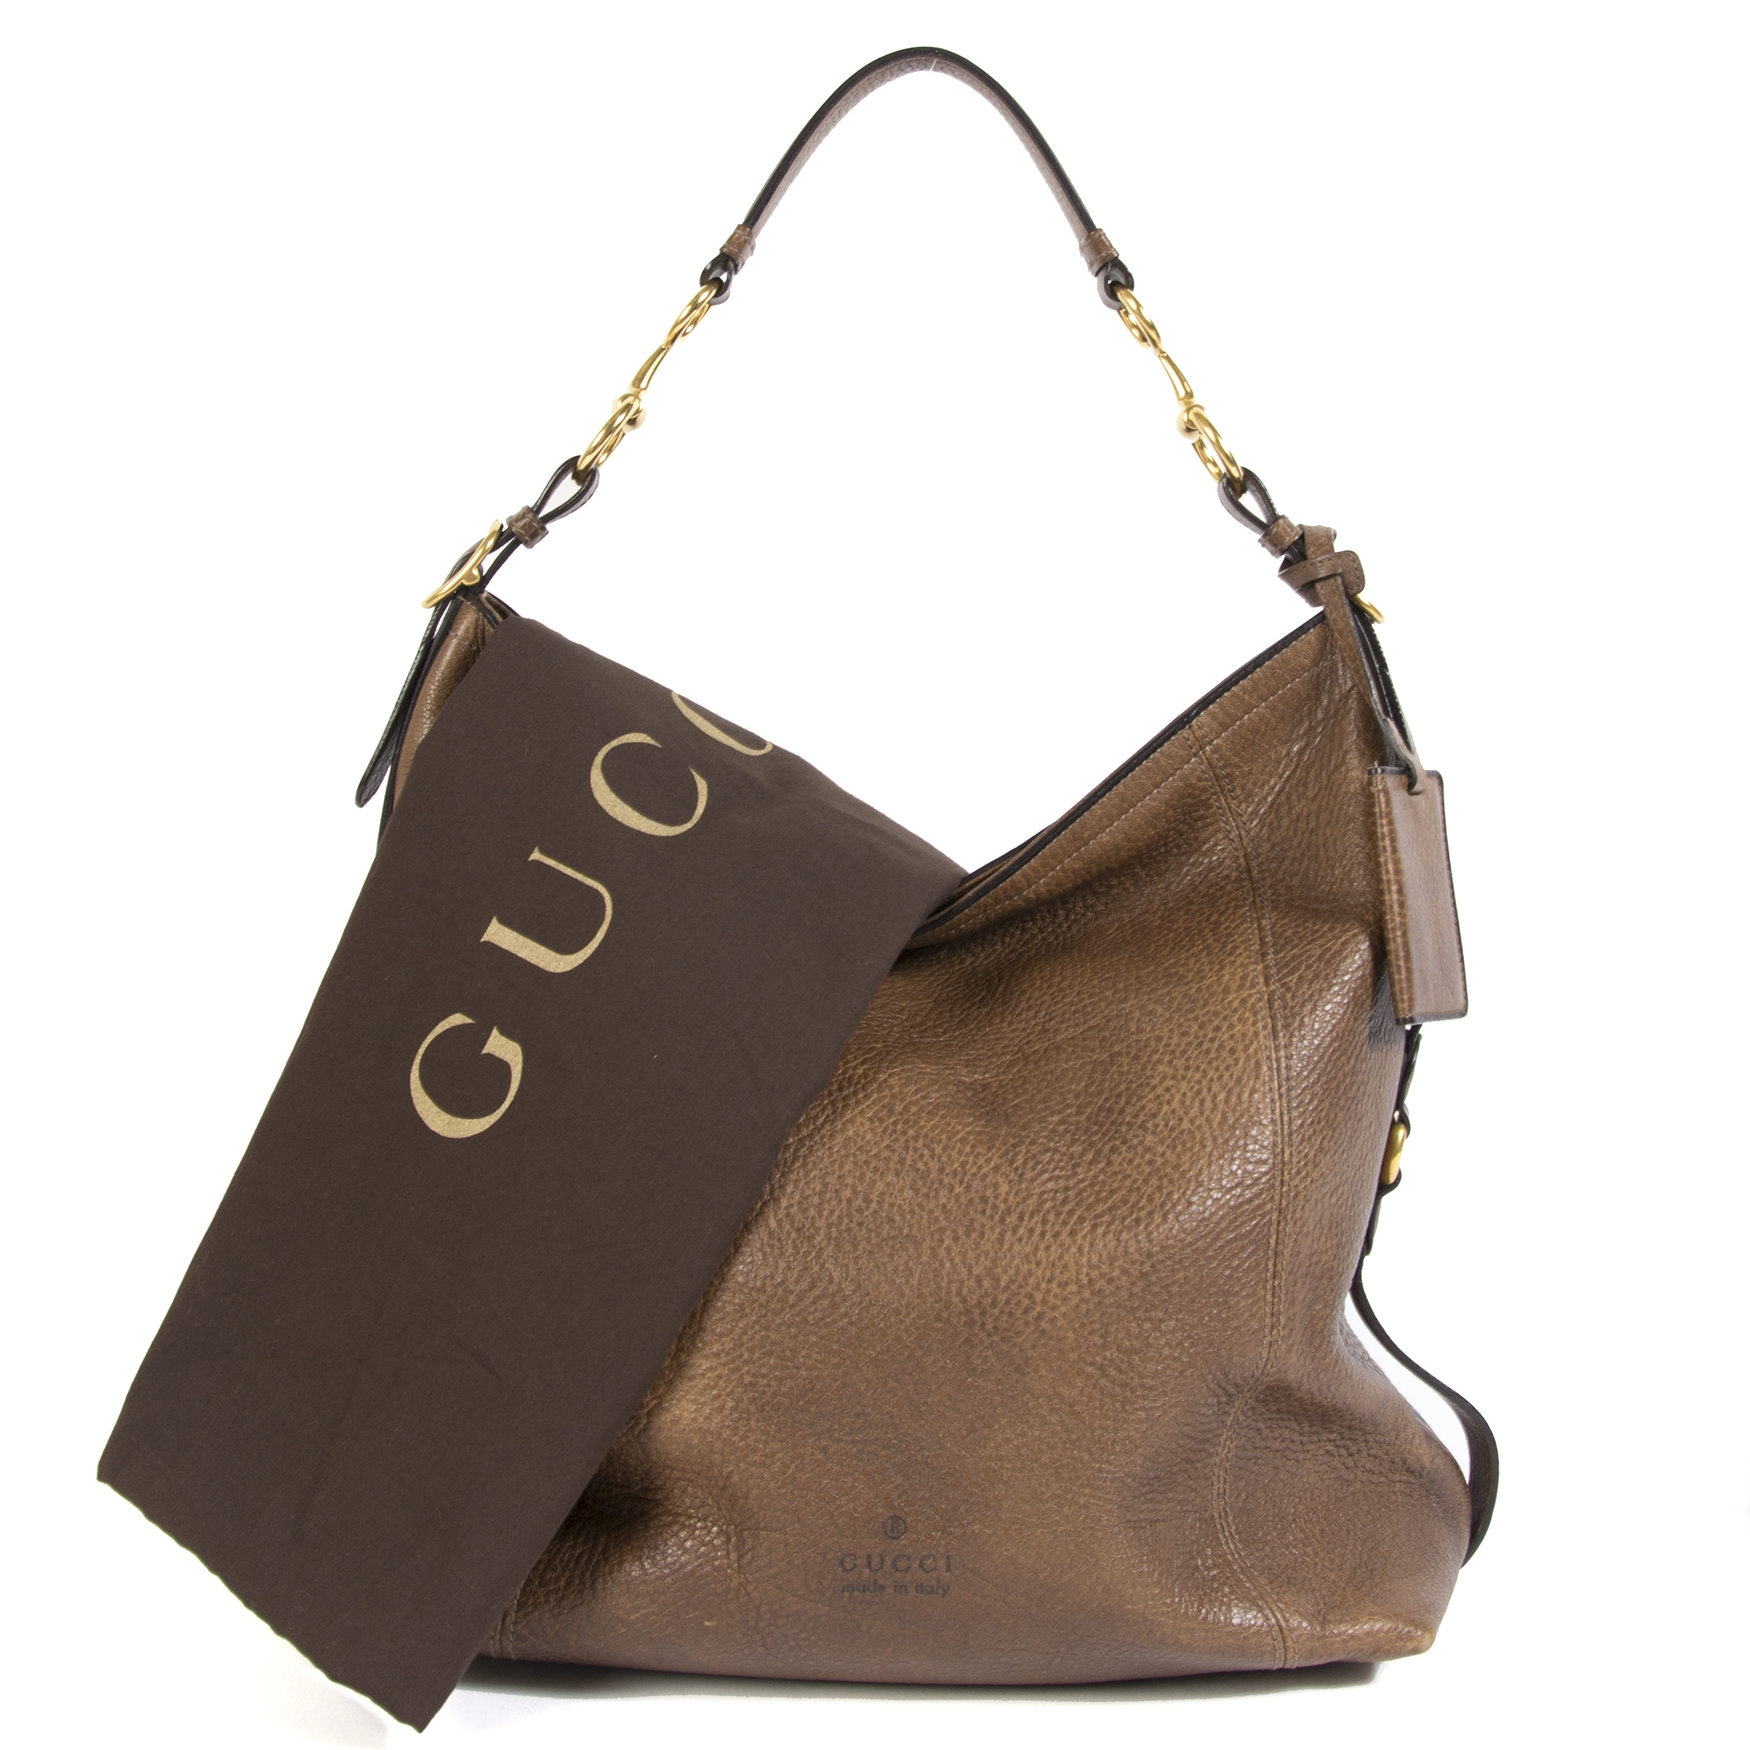 Gucci Harness Leather Hobo Bag